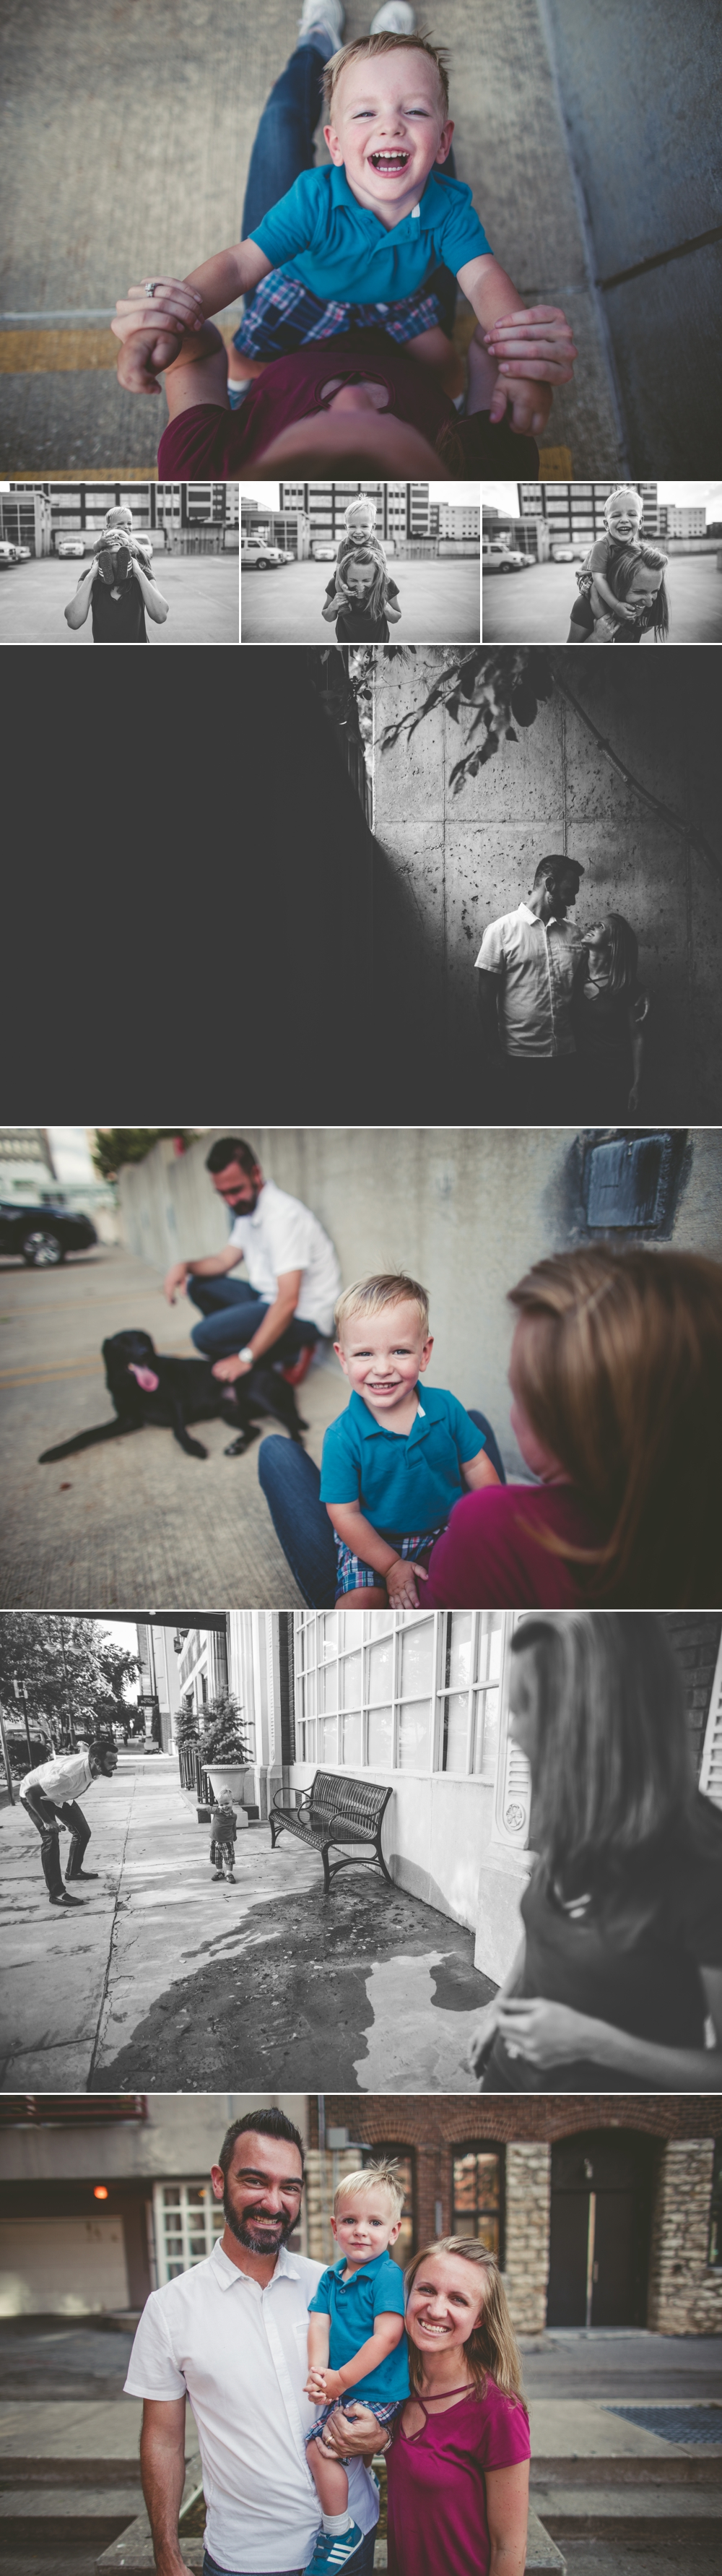 jason_domingues_photography_best_kansas_city_photographer_family_lifestyle_portraits_kc_00021.jpg